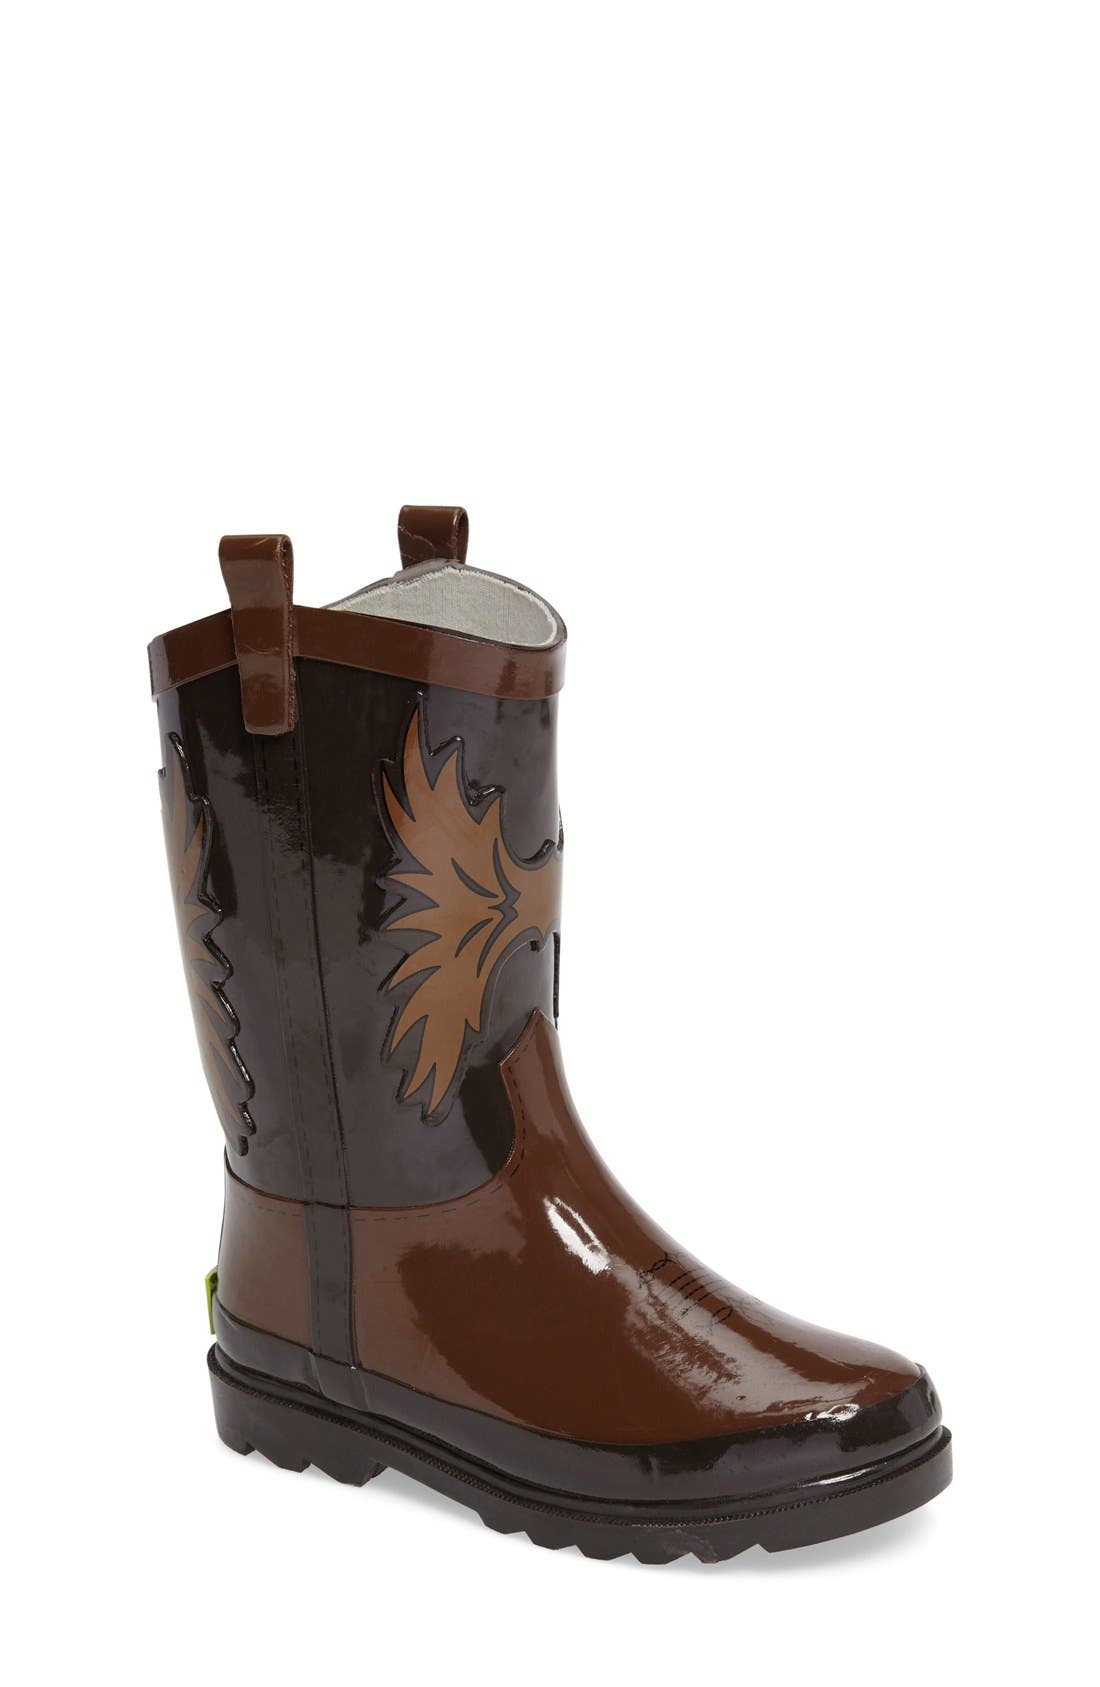 Main Image - Western Chief Cowboy Waterproof Rain Boot (Walker, Toddler, Little Kid & Big Kid)